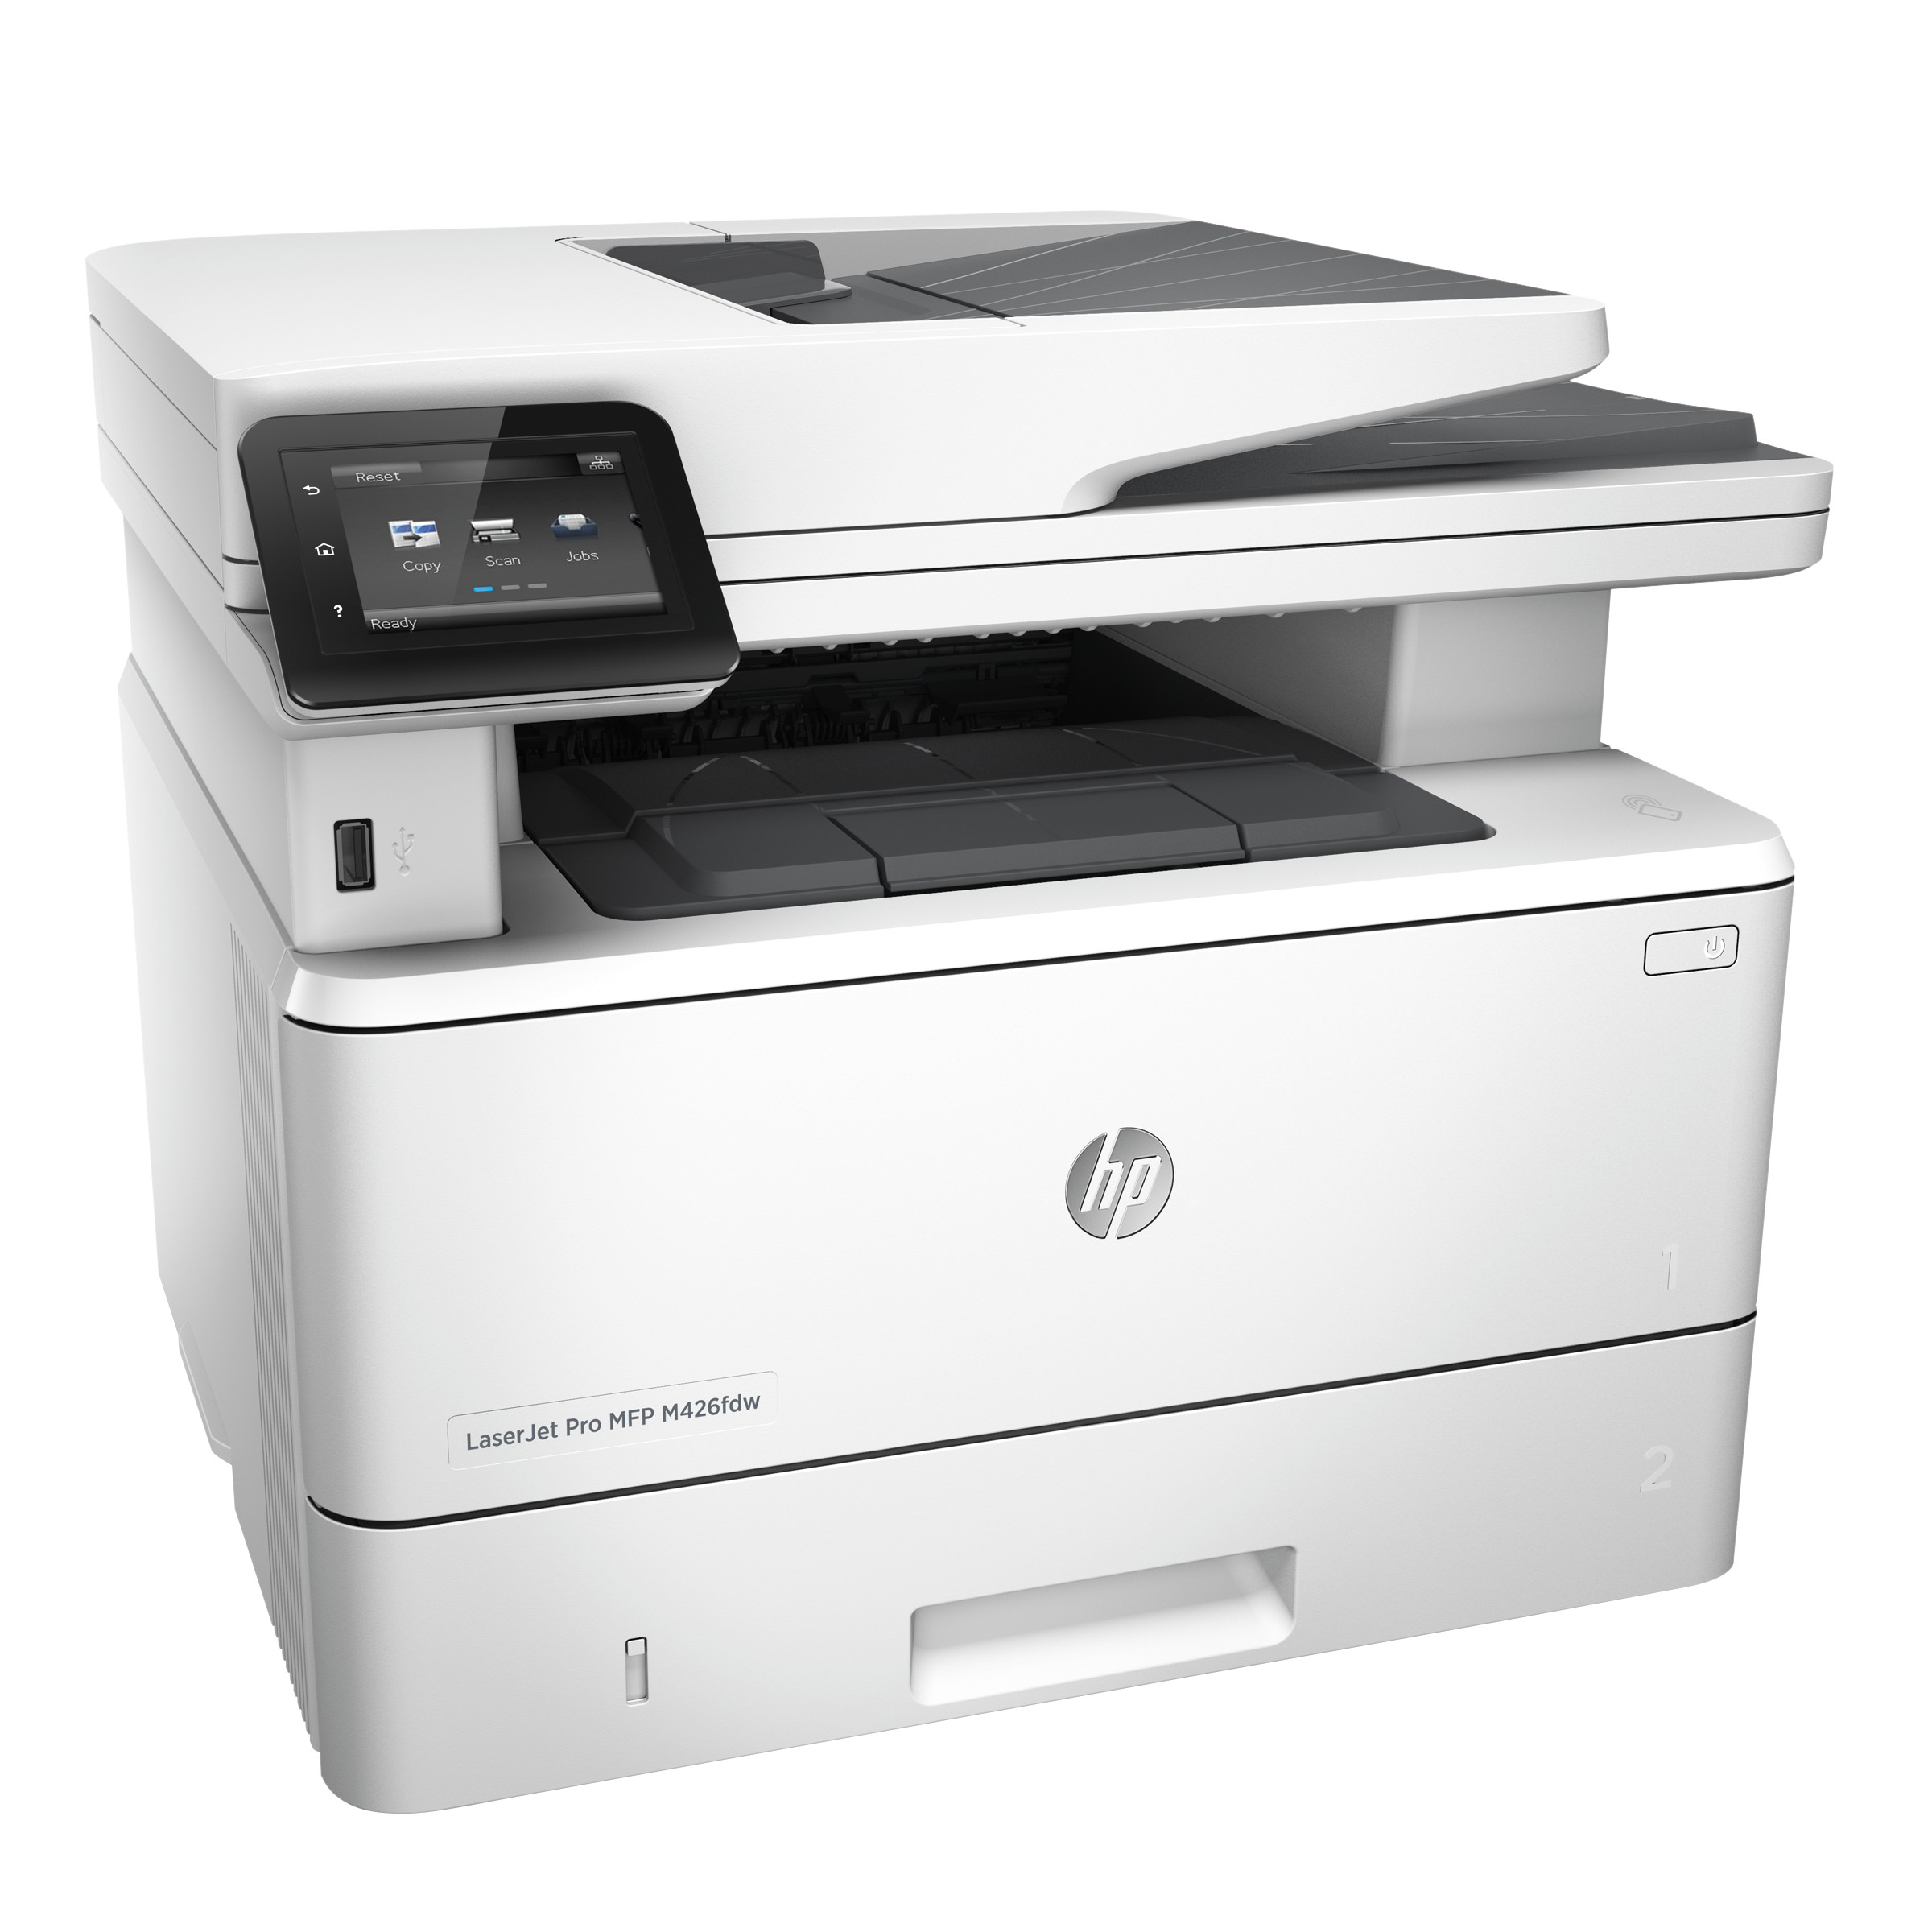 HP LaserJet Pro MFP M426FDW Wireless Multifunction Printer, Copy Fax Print Scan by HP